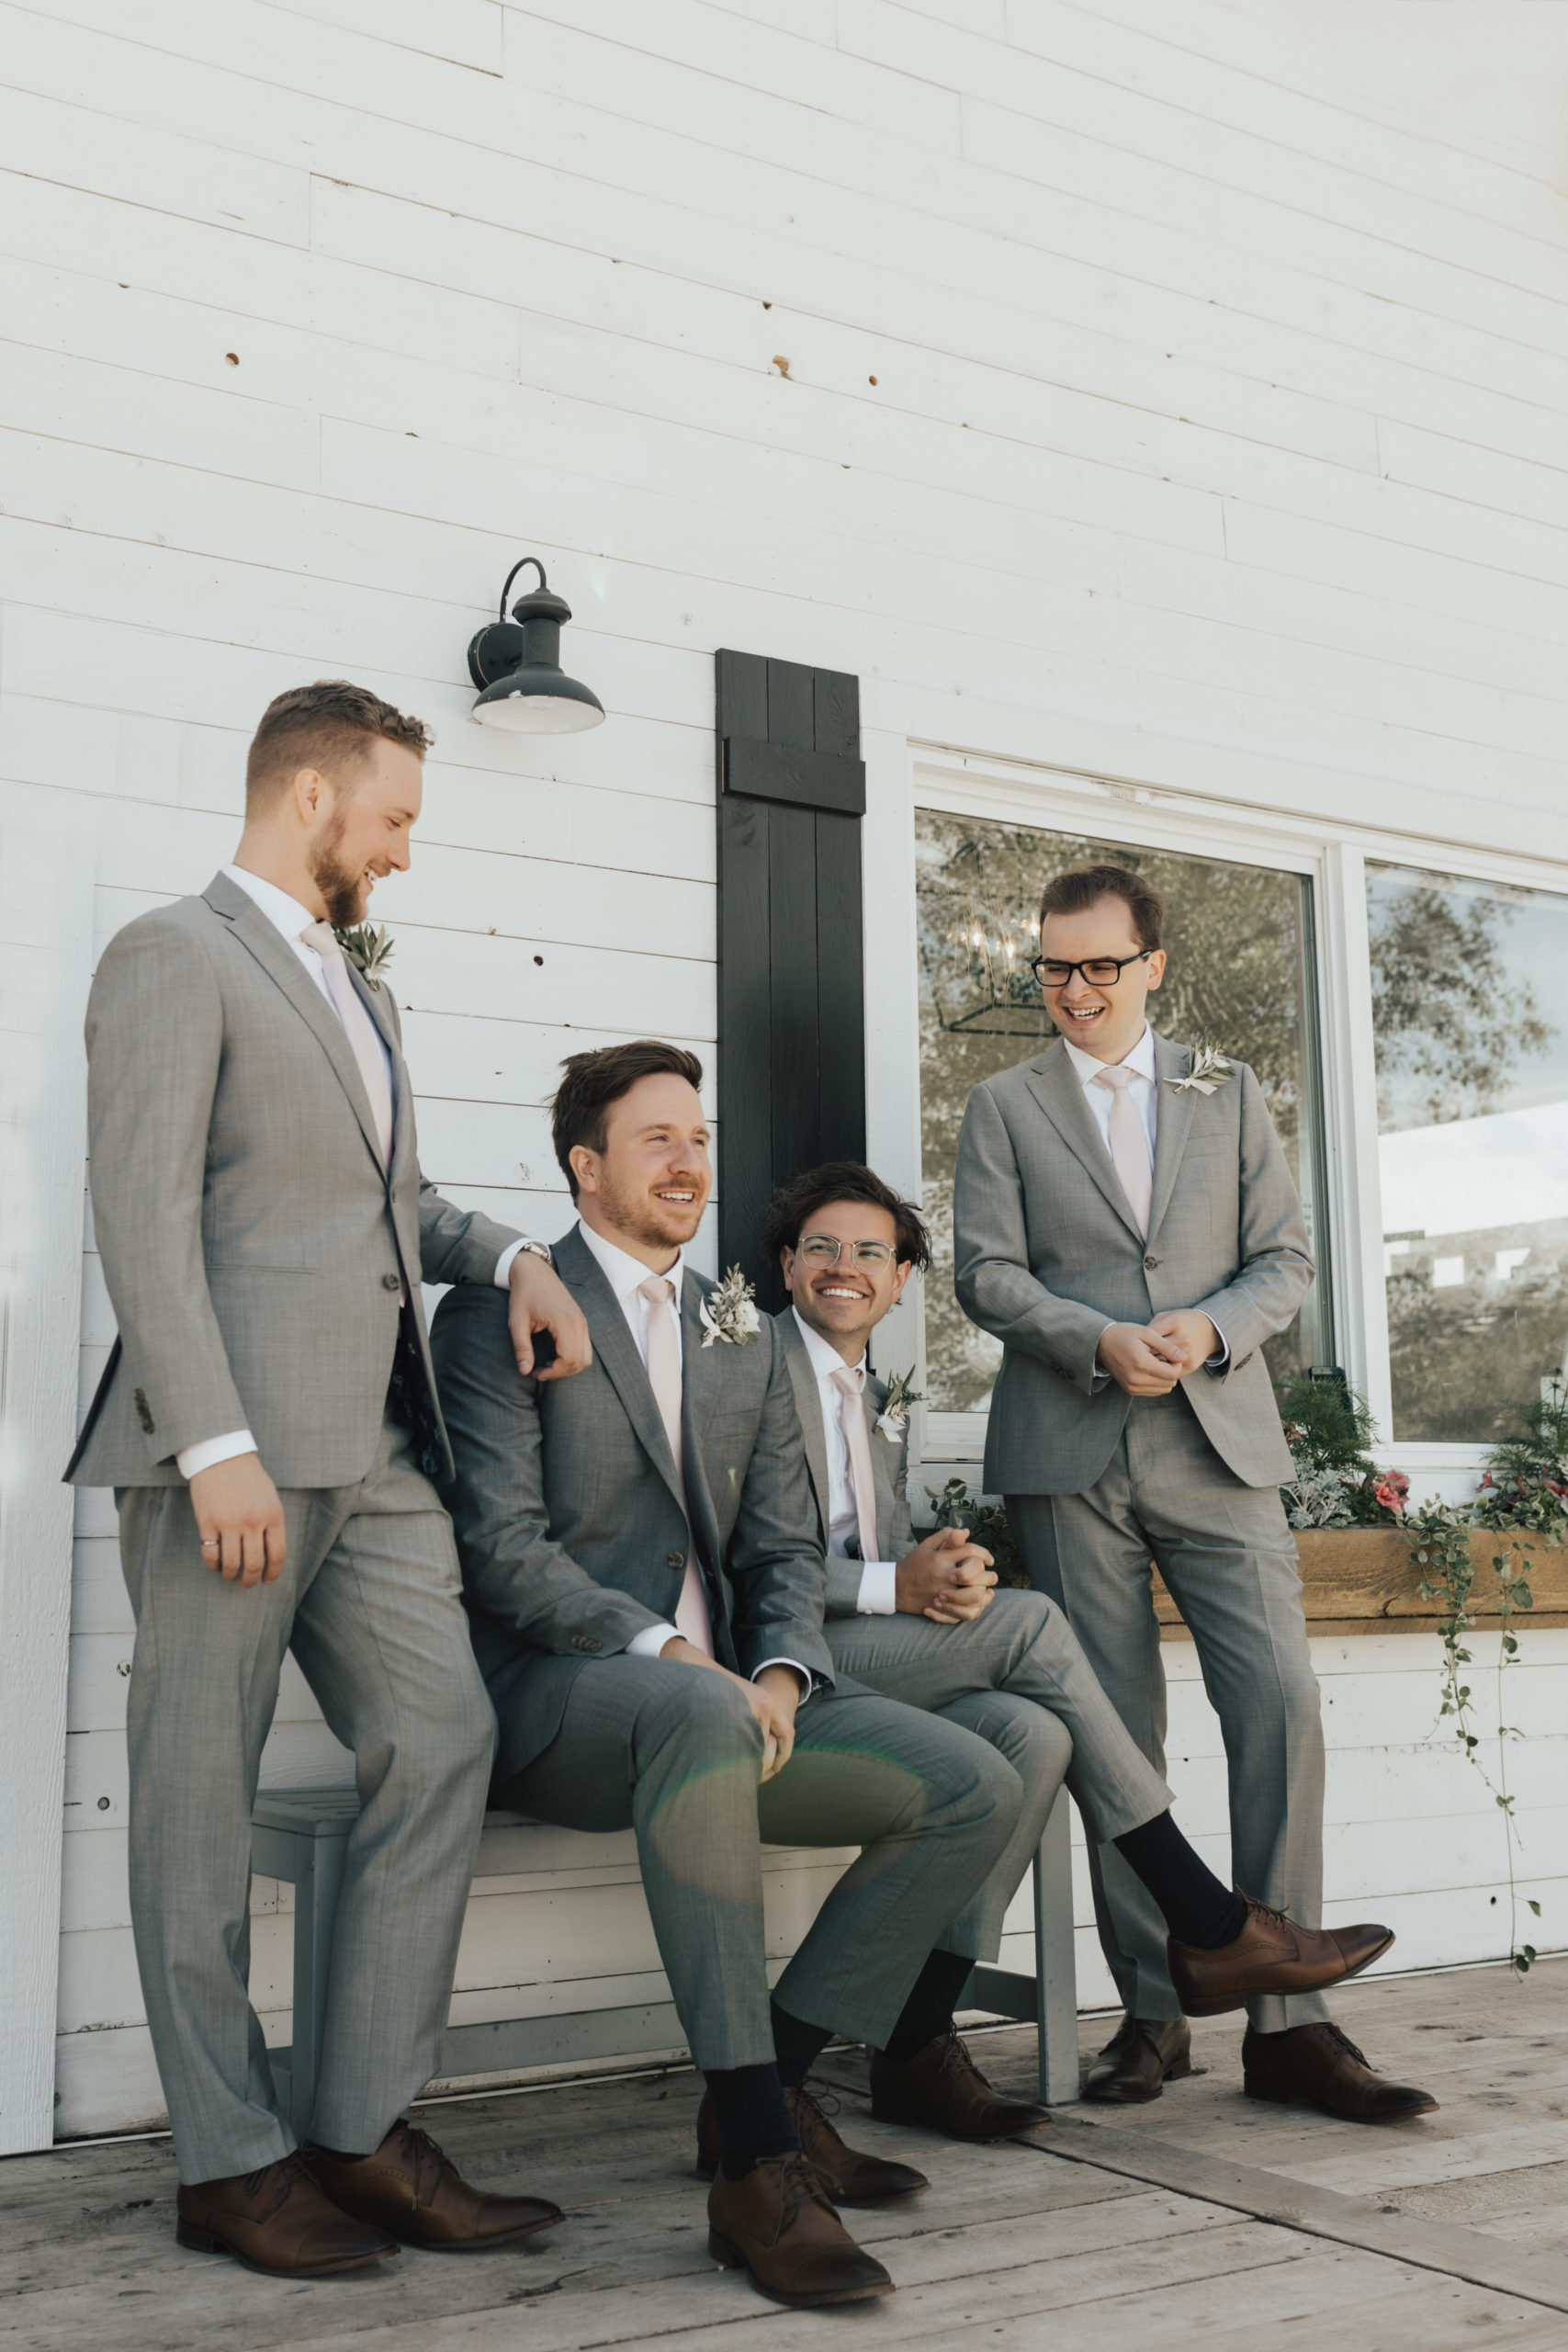 groomsmen with grey suits and pink ties sit outside a white cottage with black shutters